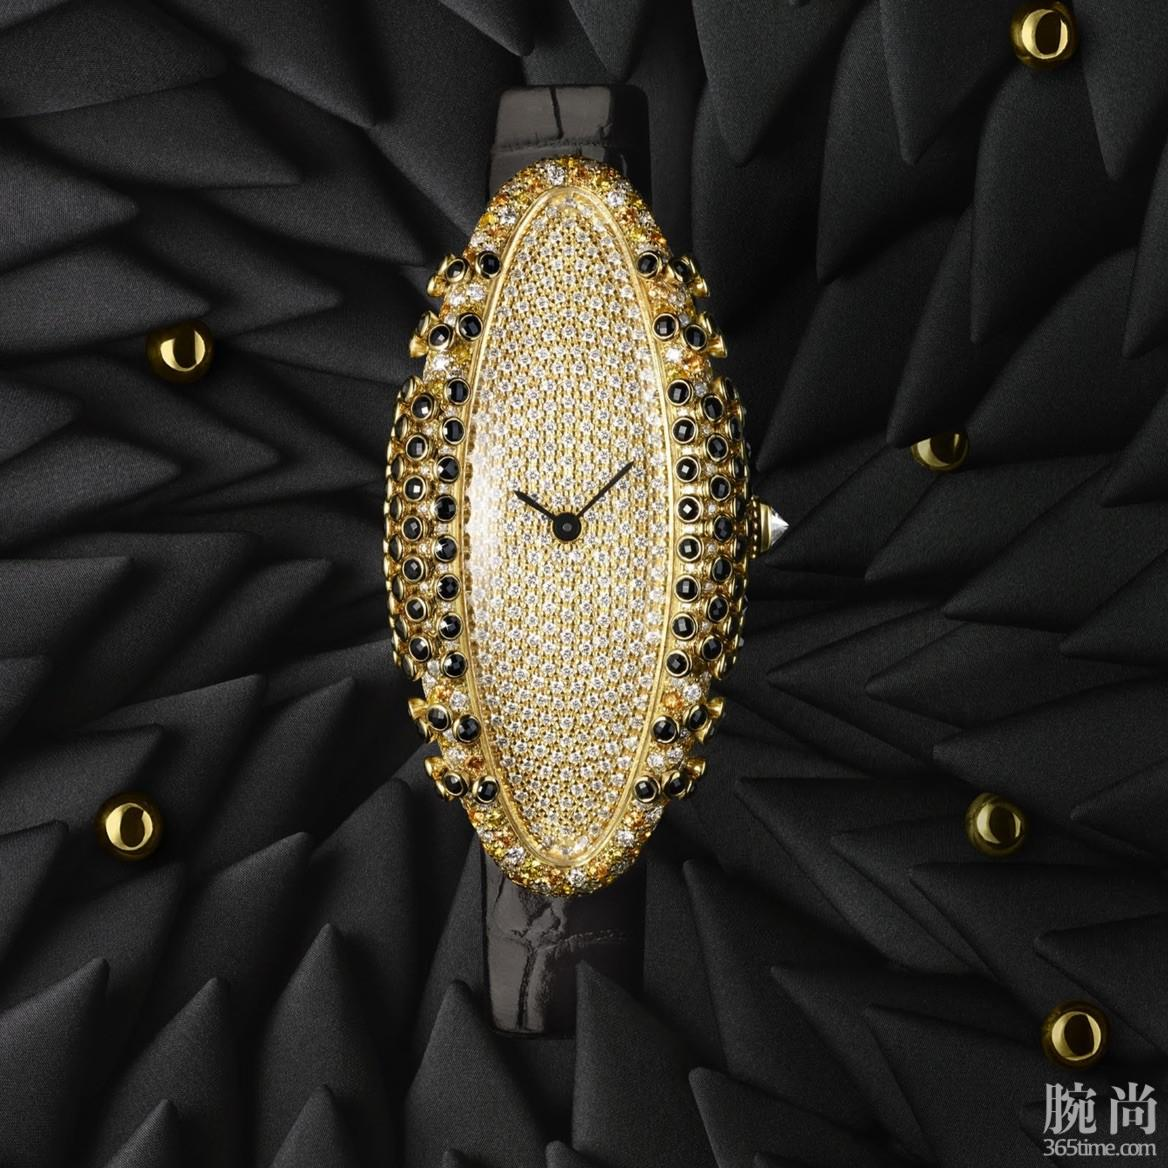 SIHH-2019-Cartier-Libre-Jewelry-collection-2.jpg